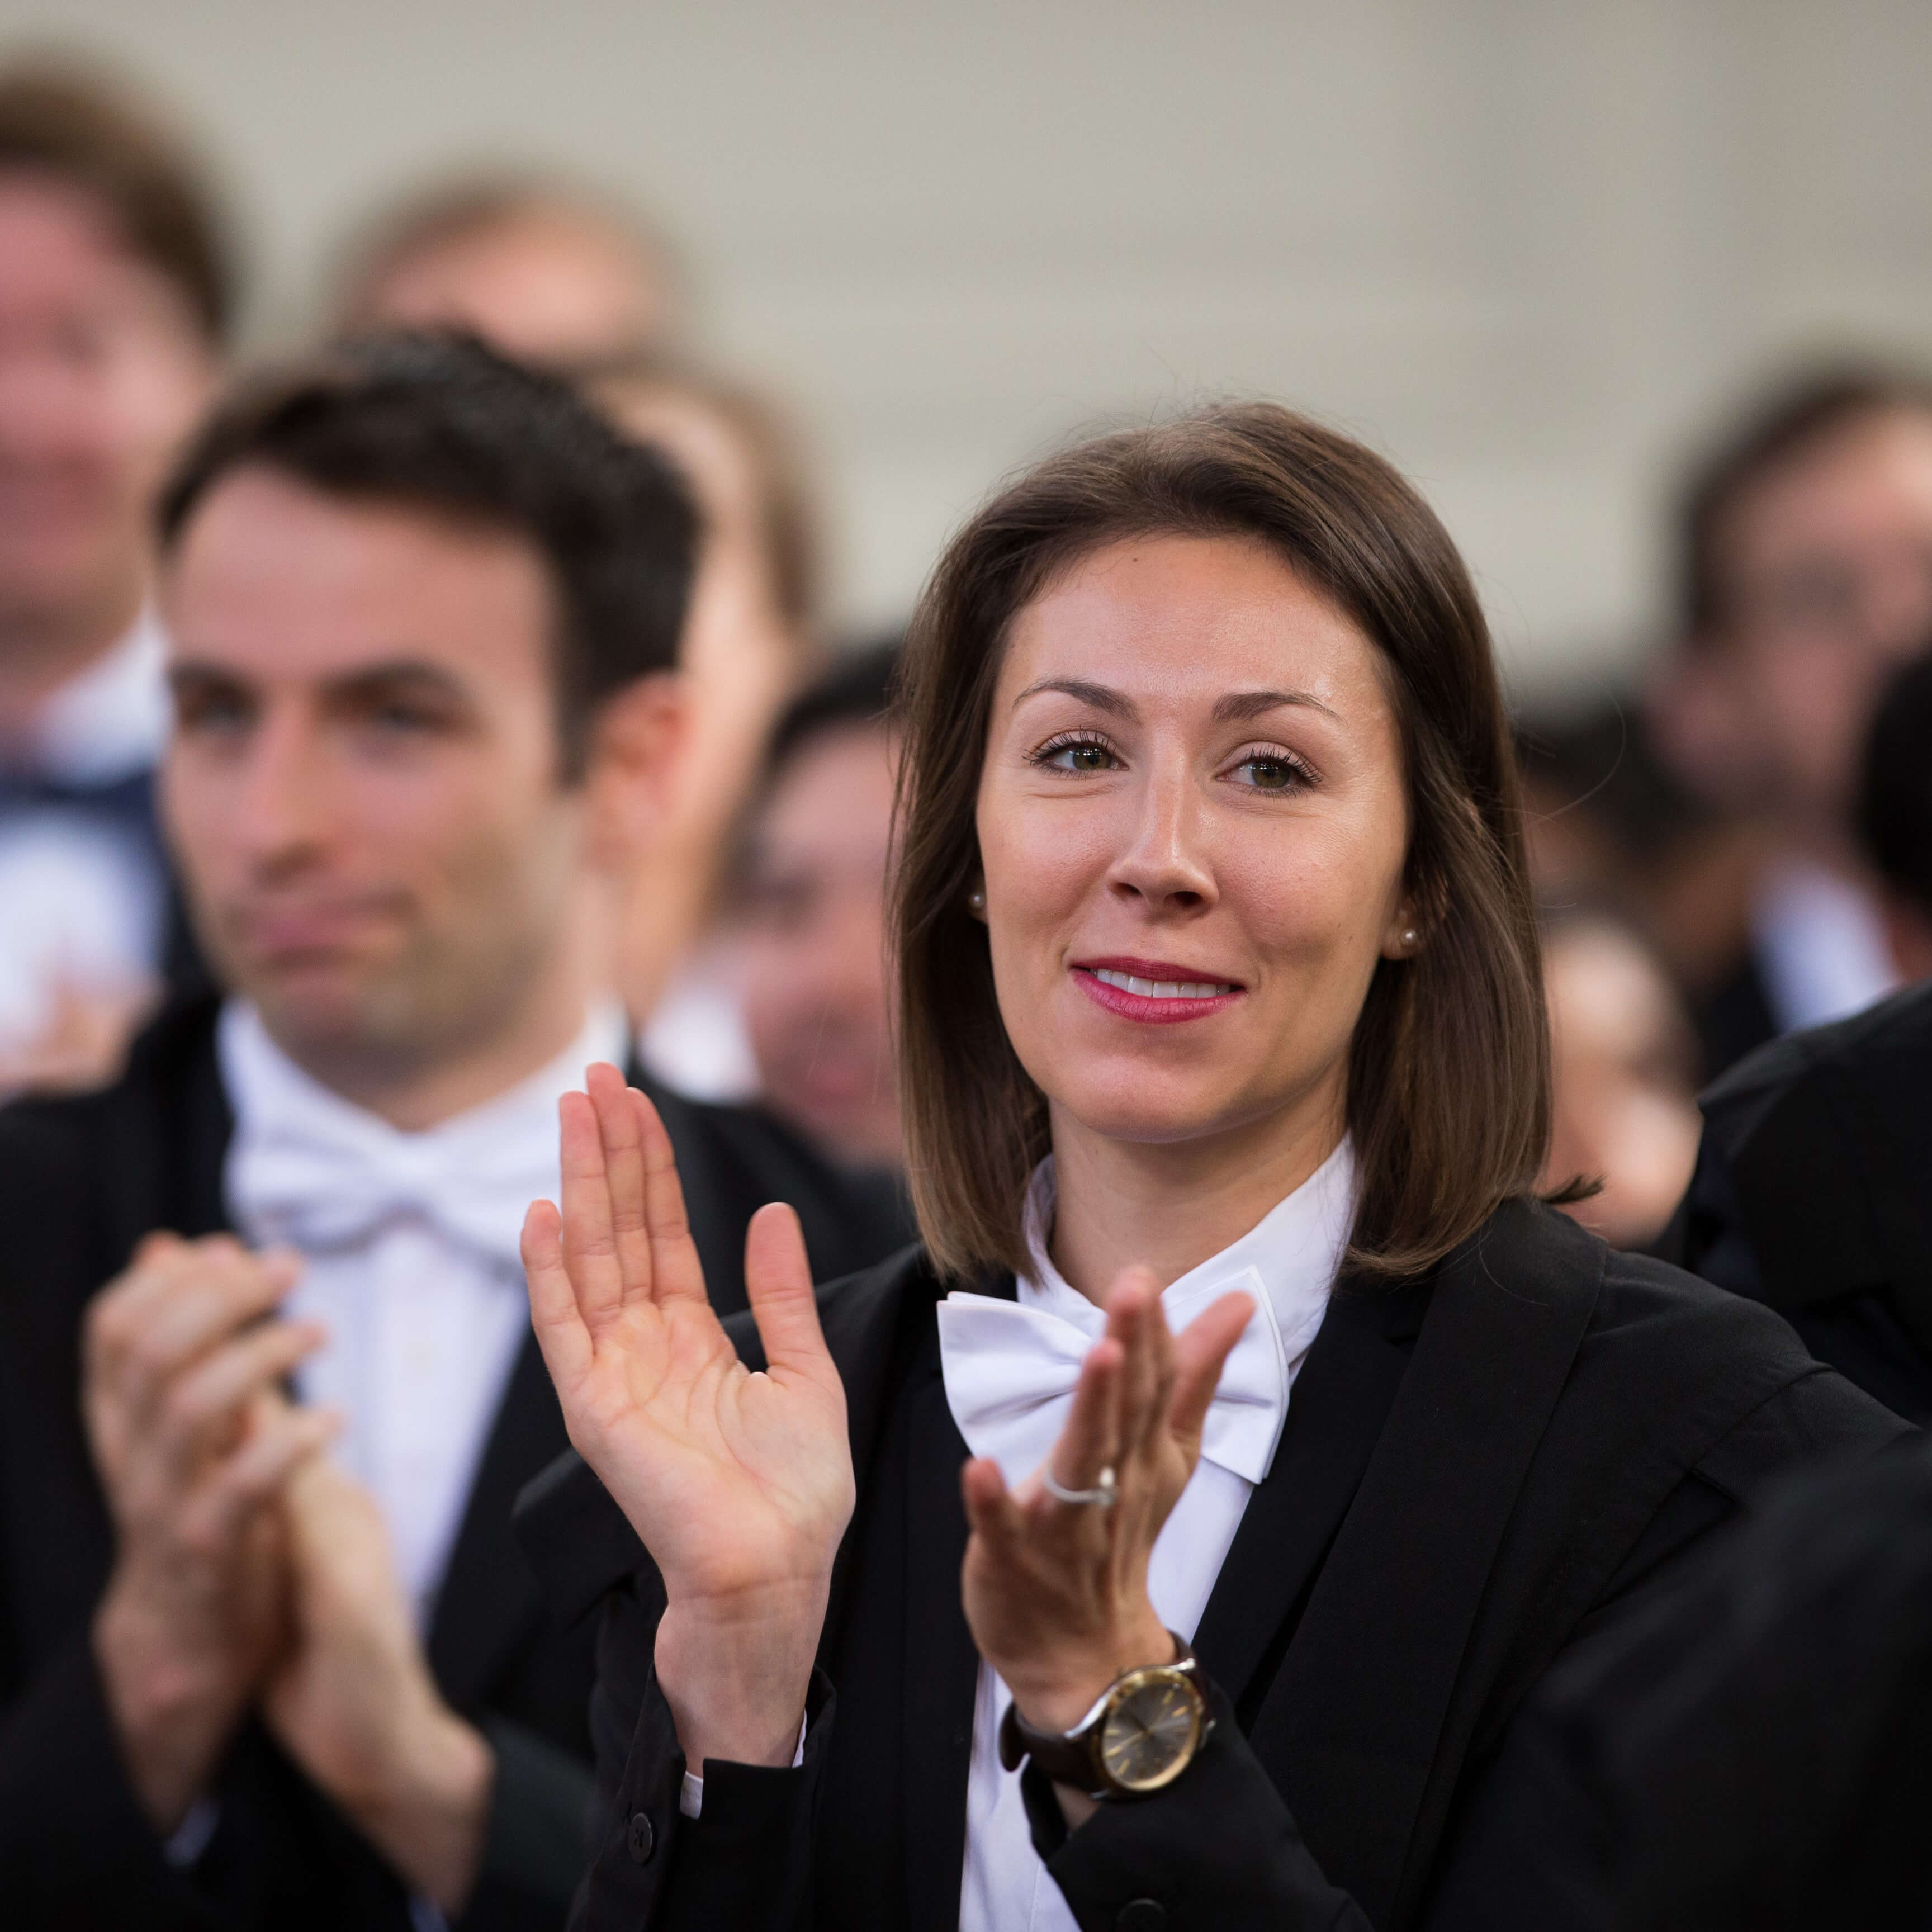 Woman clapping at graduation ceremony